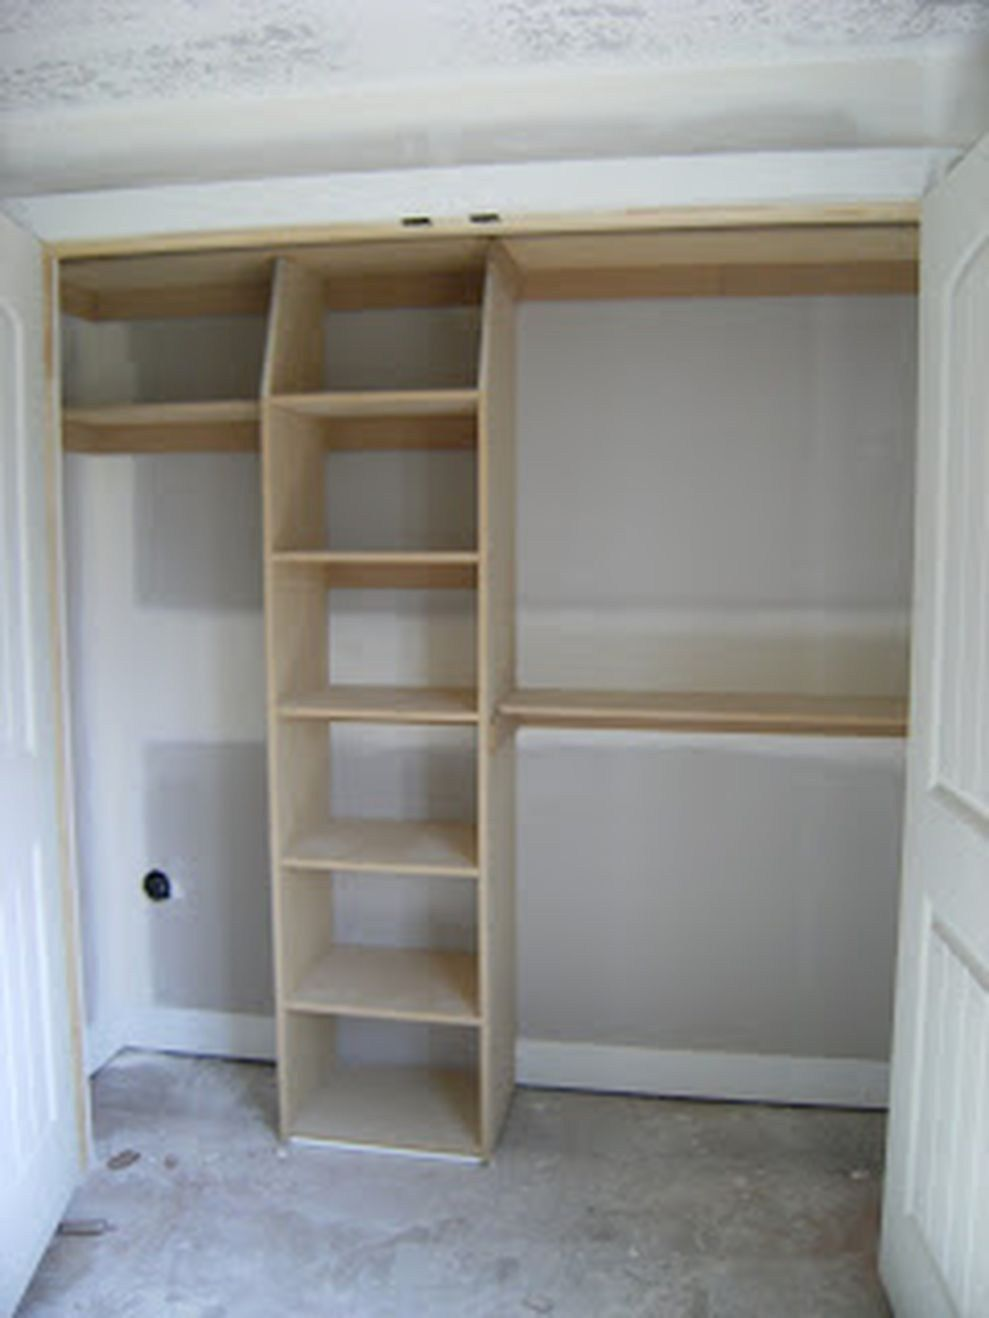 71 Easy And Affordable Diy Wood Closet Shelves Ideas Wood Closet